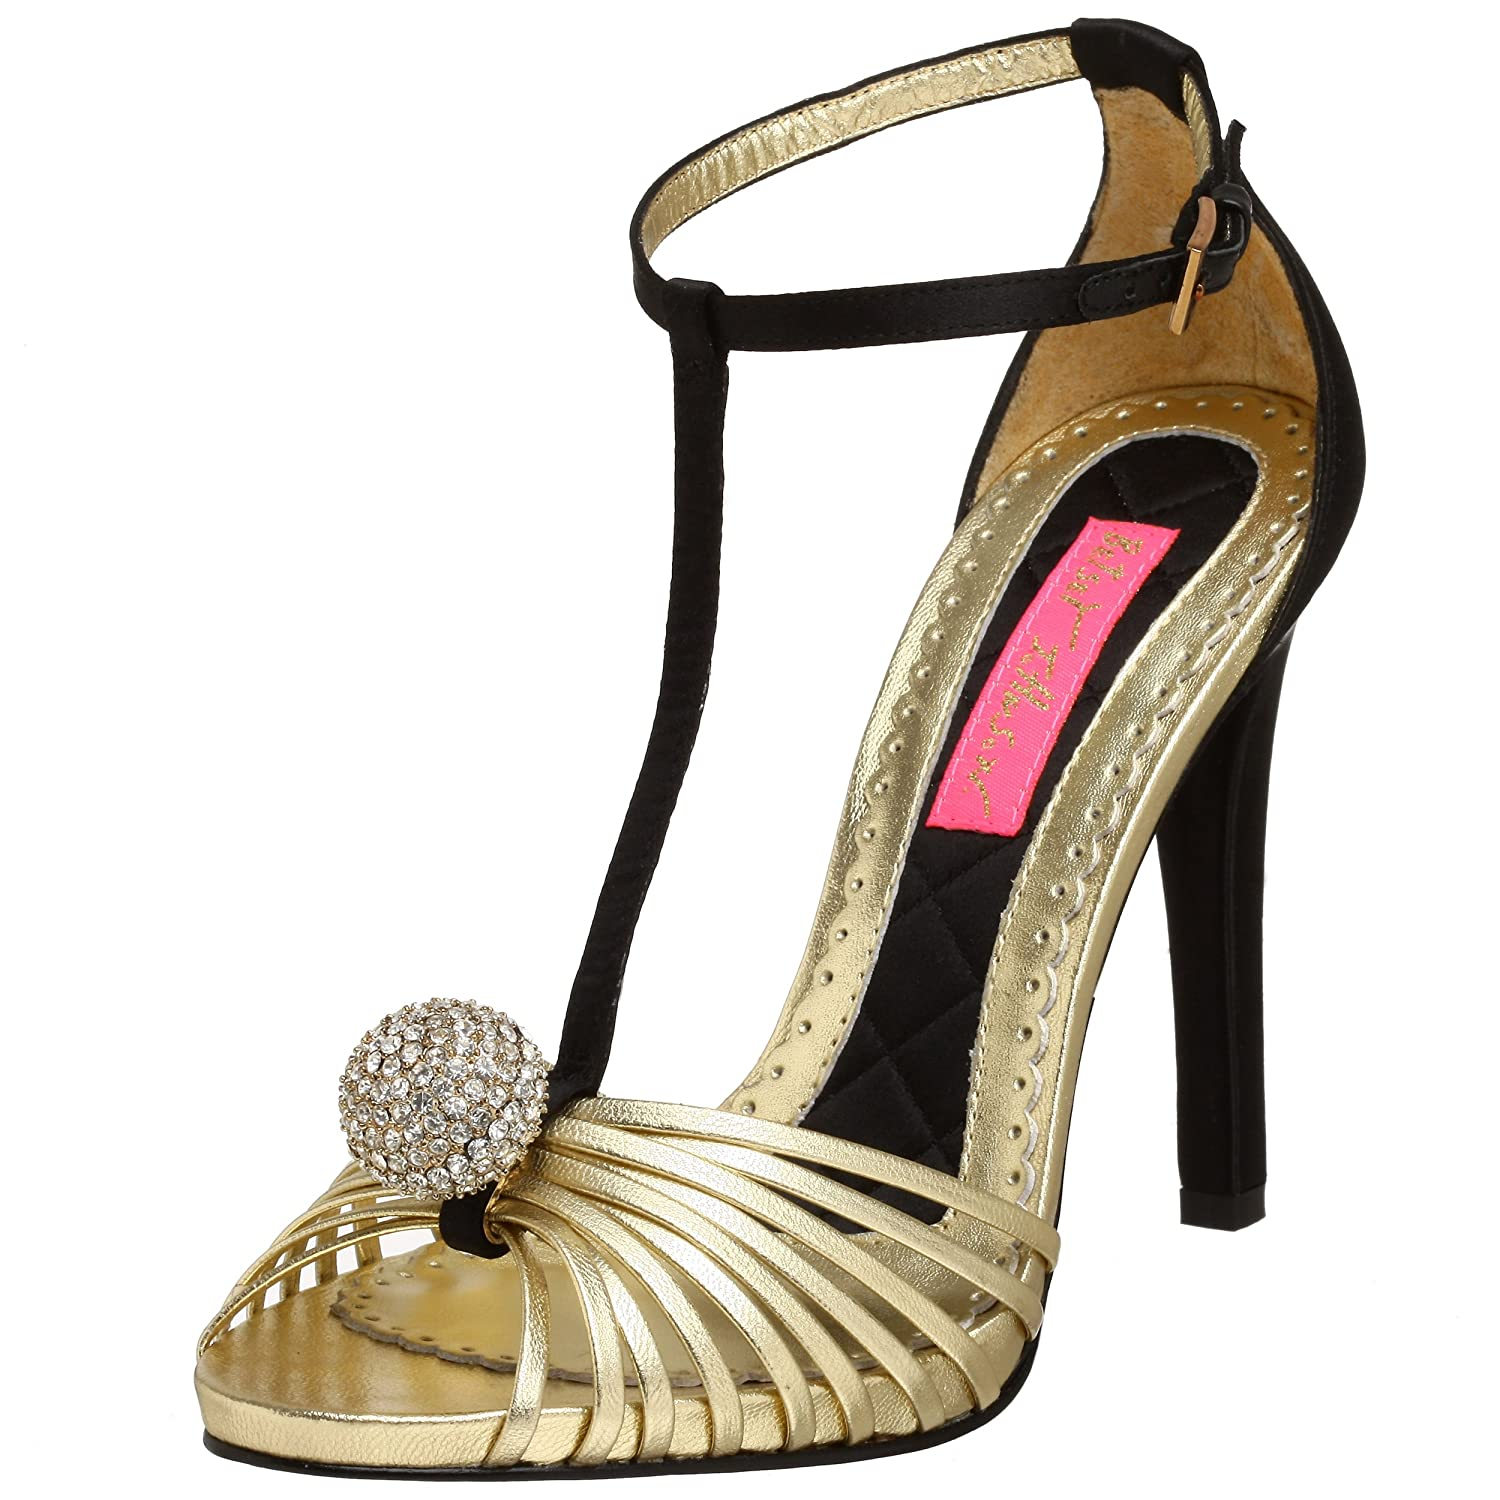 Betsey Johnson Women's Ranae T-Strap Sandal - Free Overnight Shipping & Return Shipping: Endless.com from endless.com